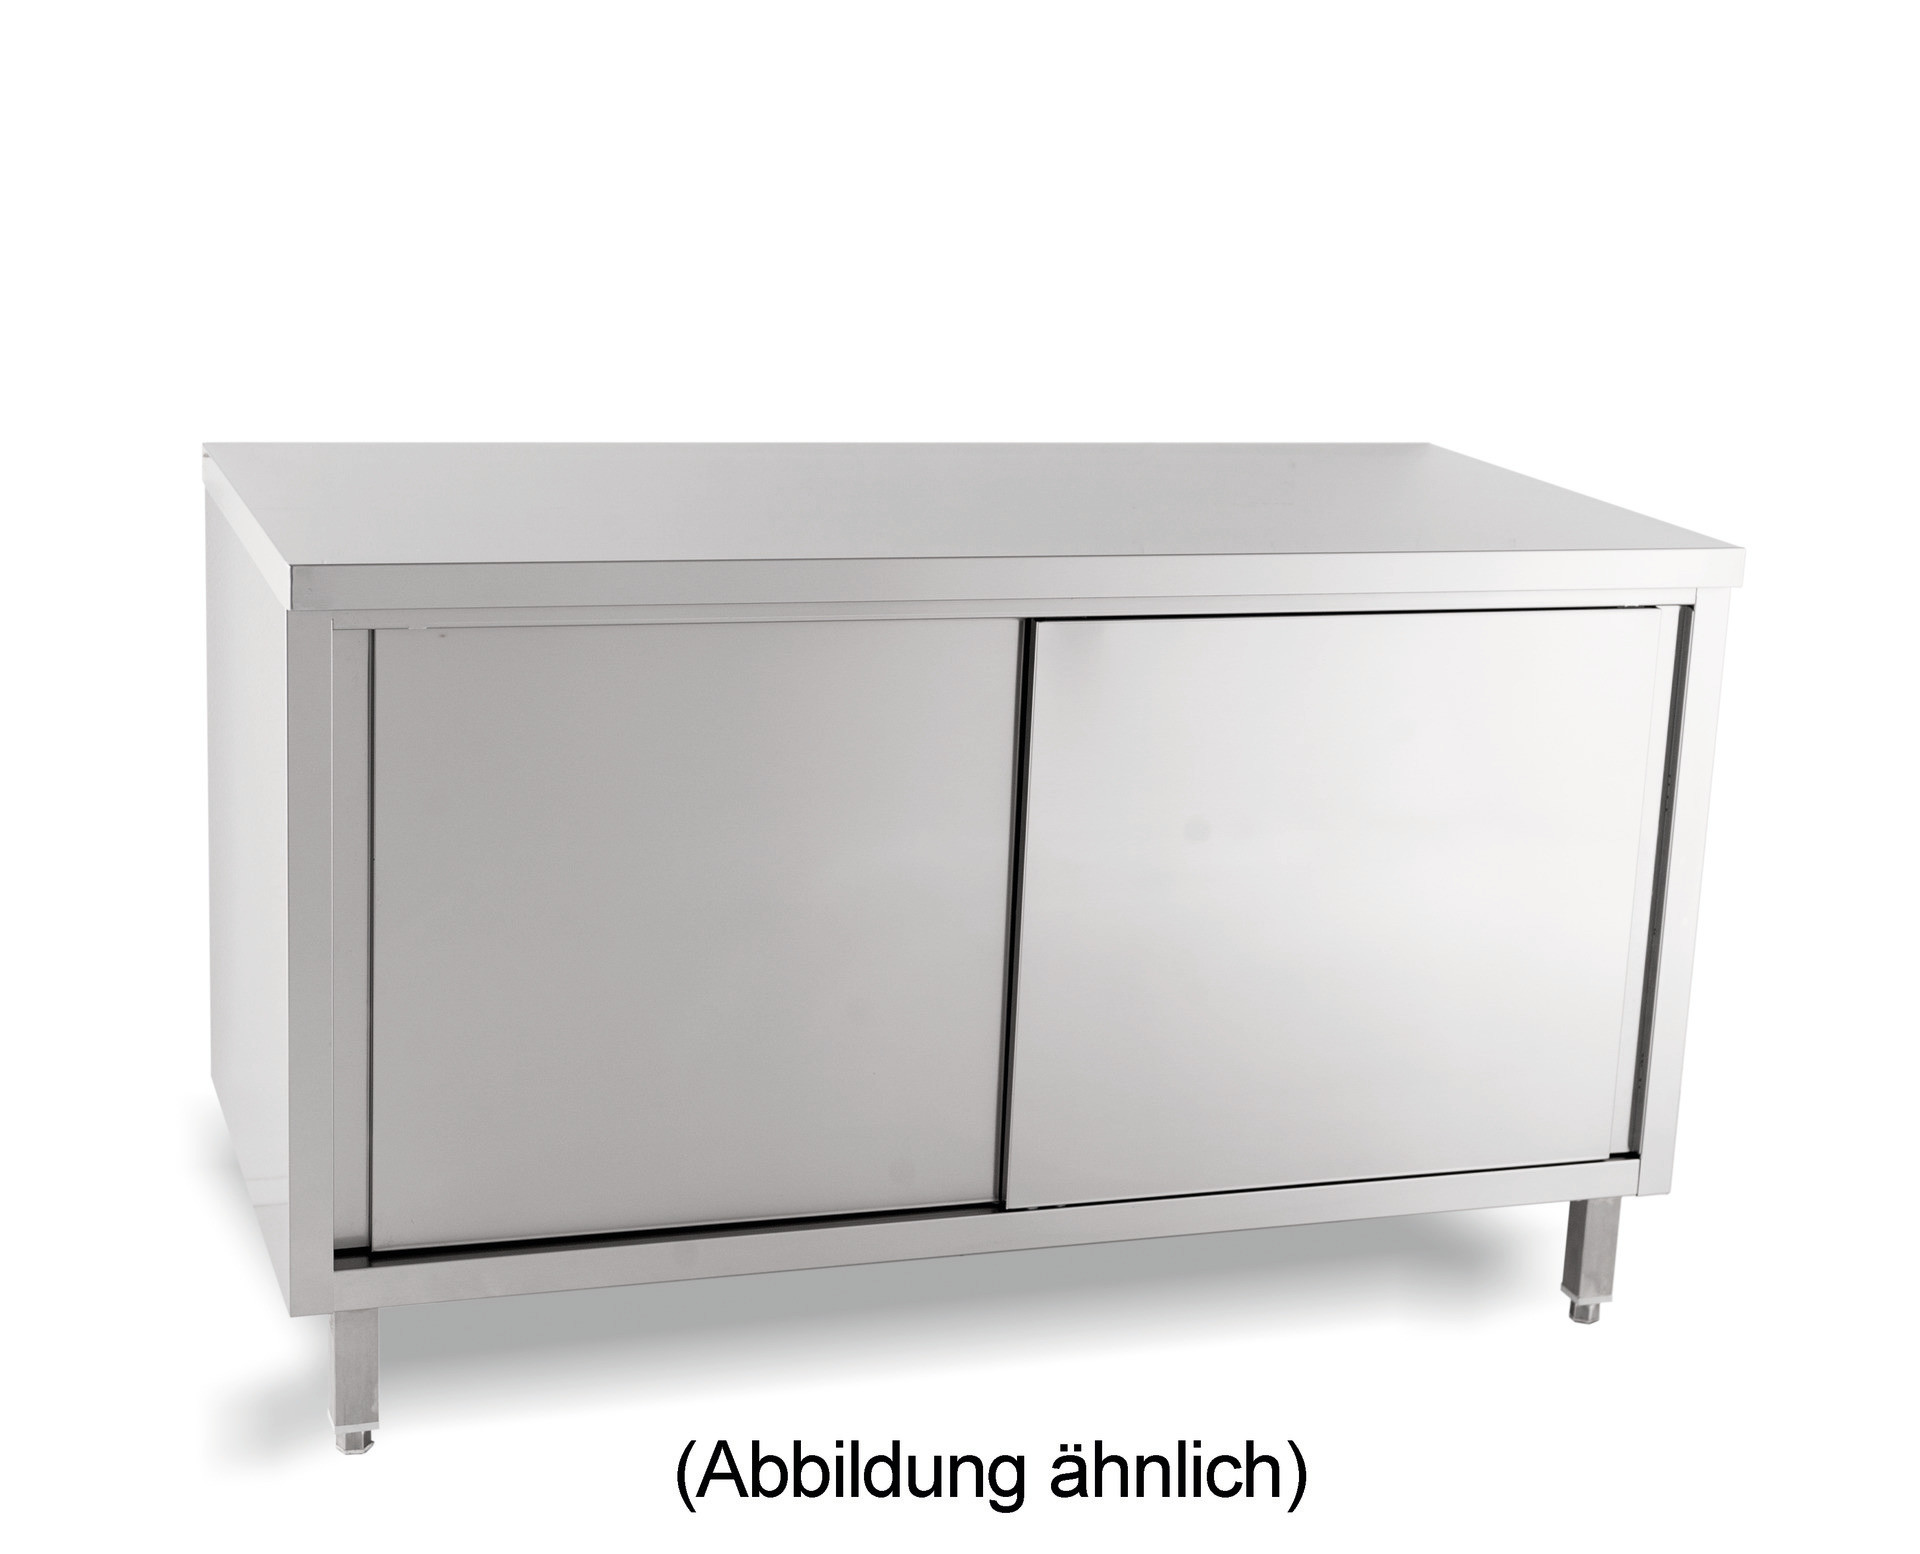 Arbeitsschrank mit Schiebetüren ohne Aufkantung 1000 x 700 x 850 mm